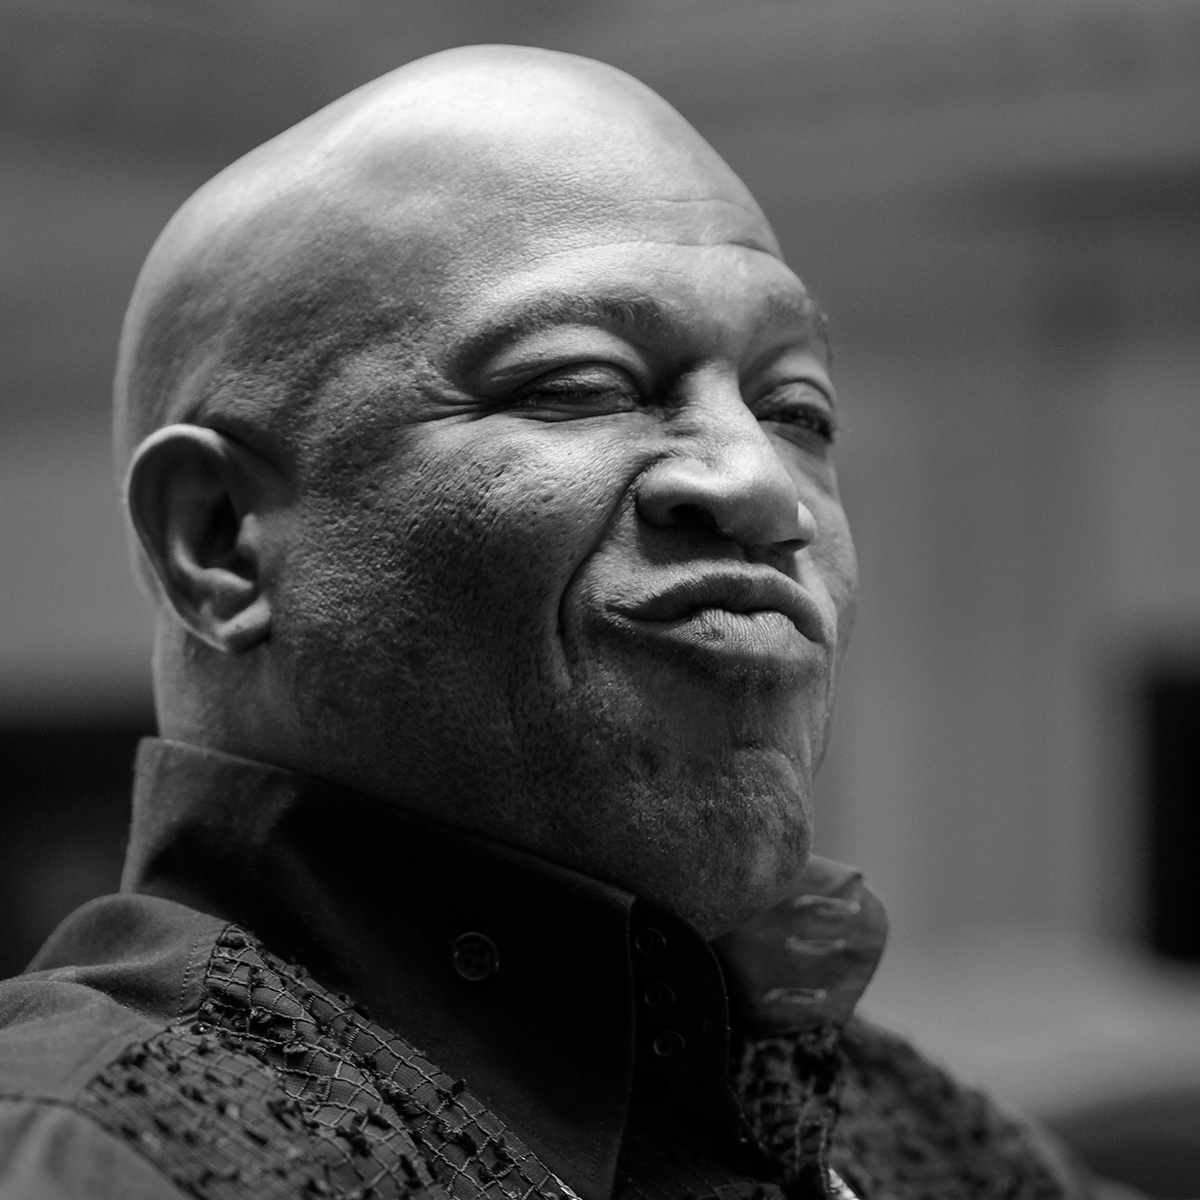 Tom Lister Jr., actor